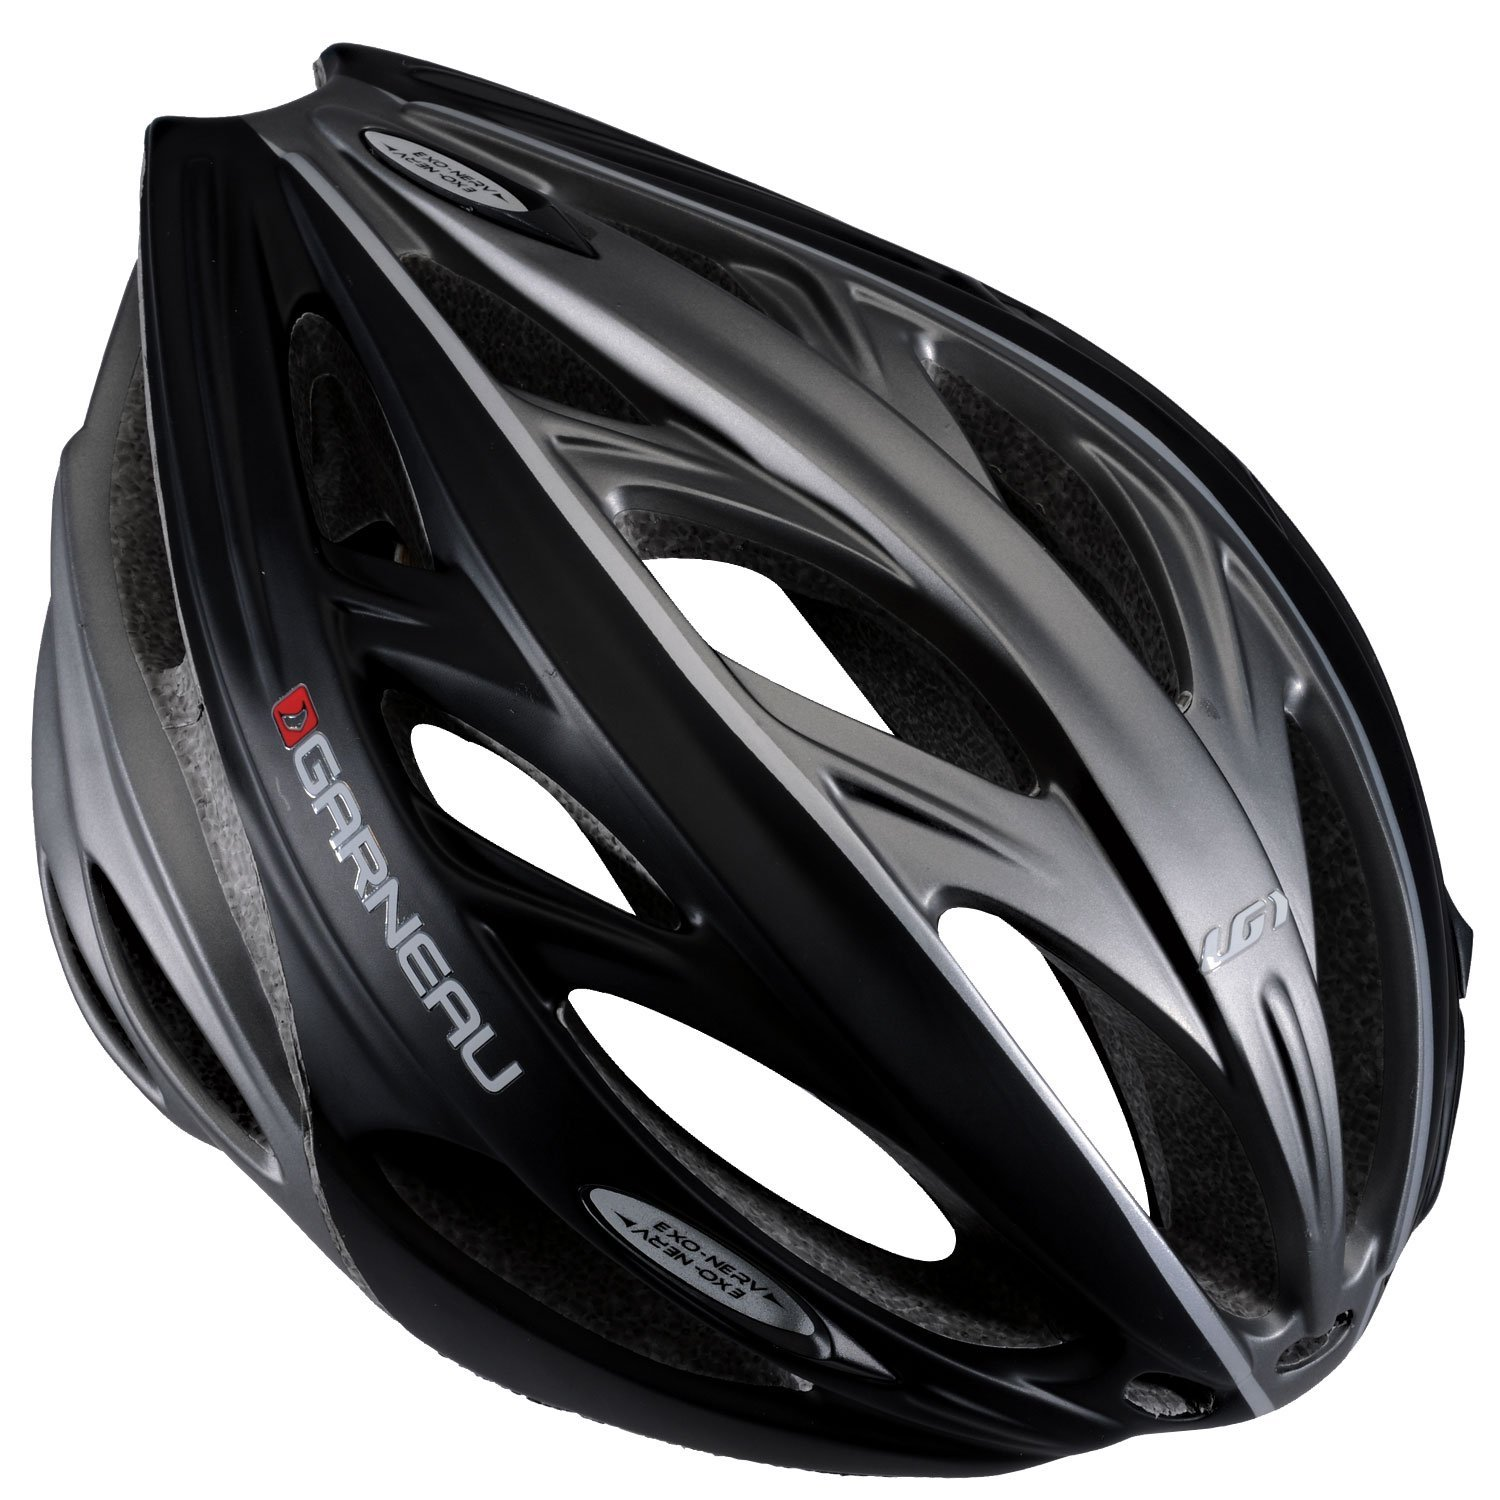 Large Garneau Bicycle Helmets